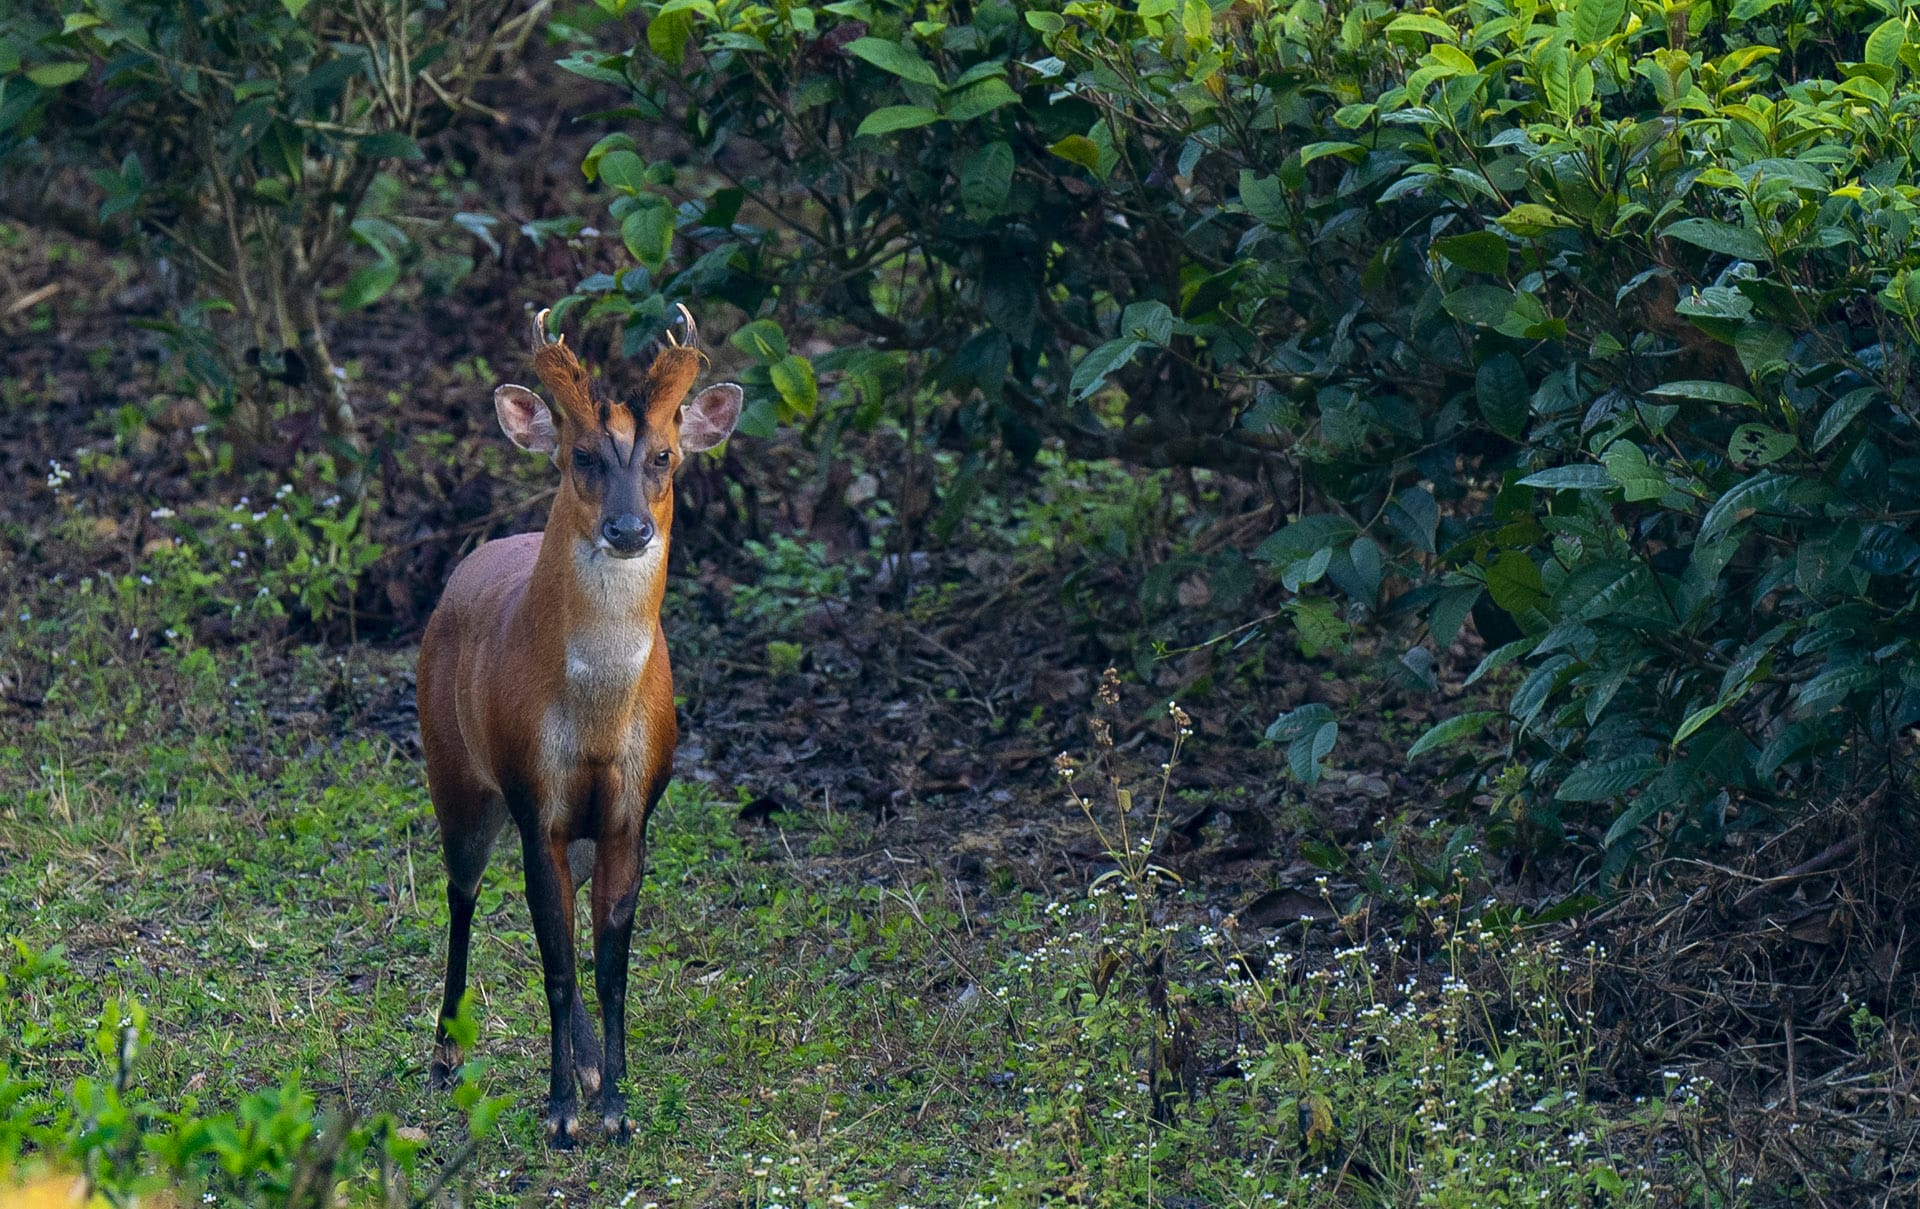 Barking deer have adapted to changes in their landscape due to human activity, like this individual seen in a tea estate in Assam. They have resorted to feeding on bushes and shrubs growing in and around plantations, and may feed on tea seeds as well. Photo: Dhritiman Mukherjee